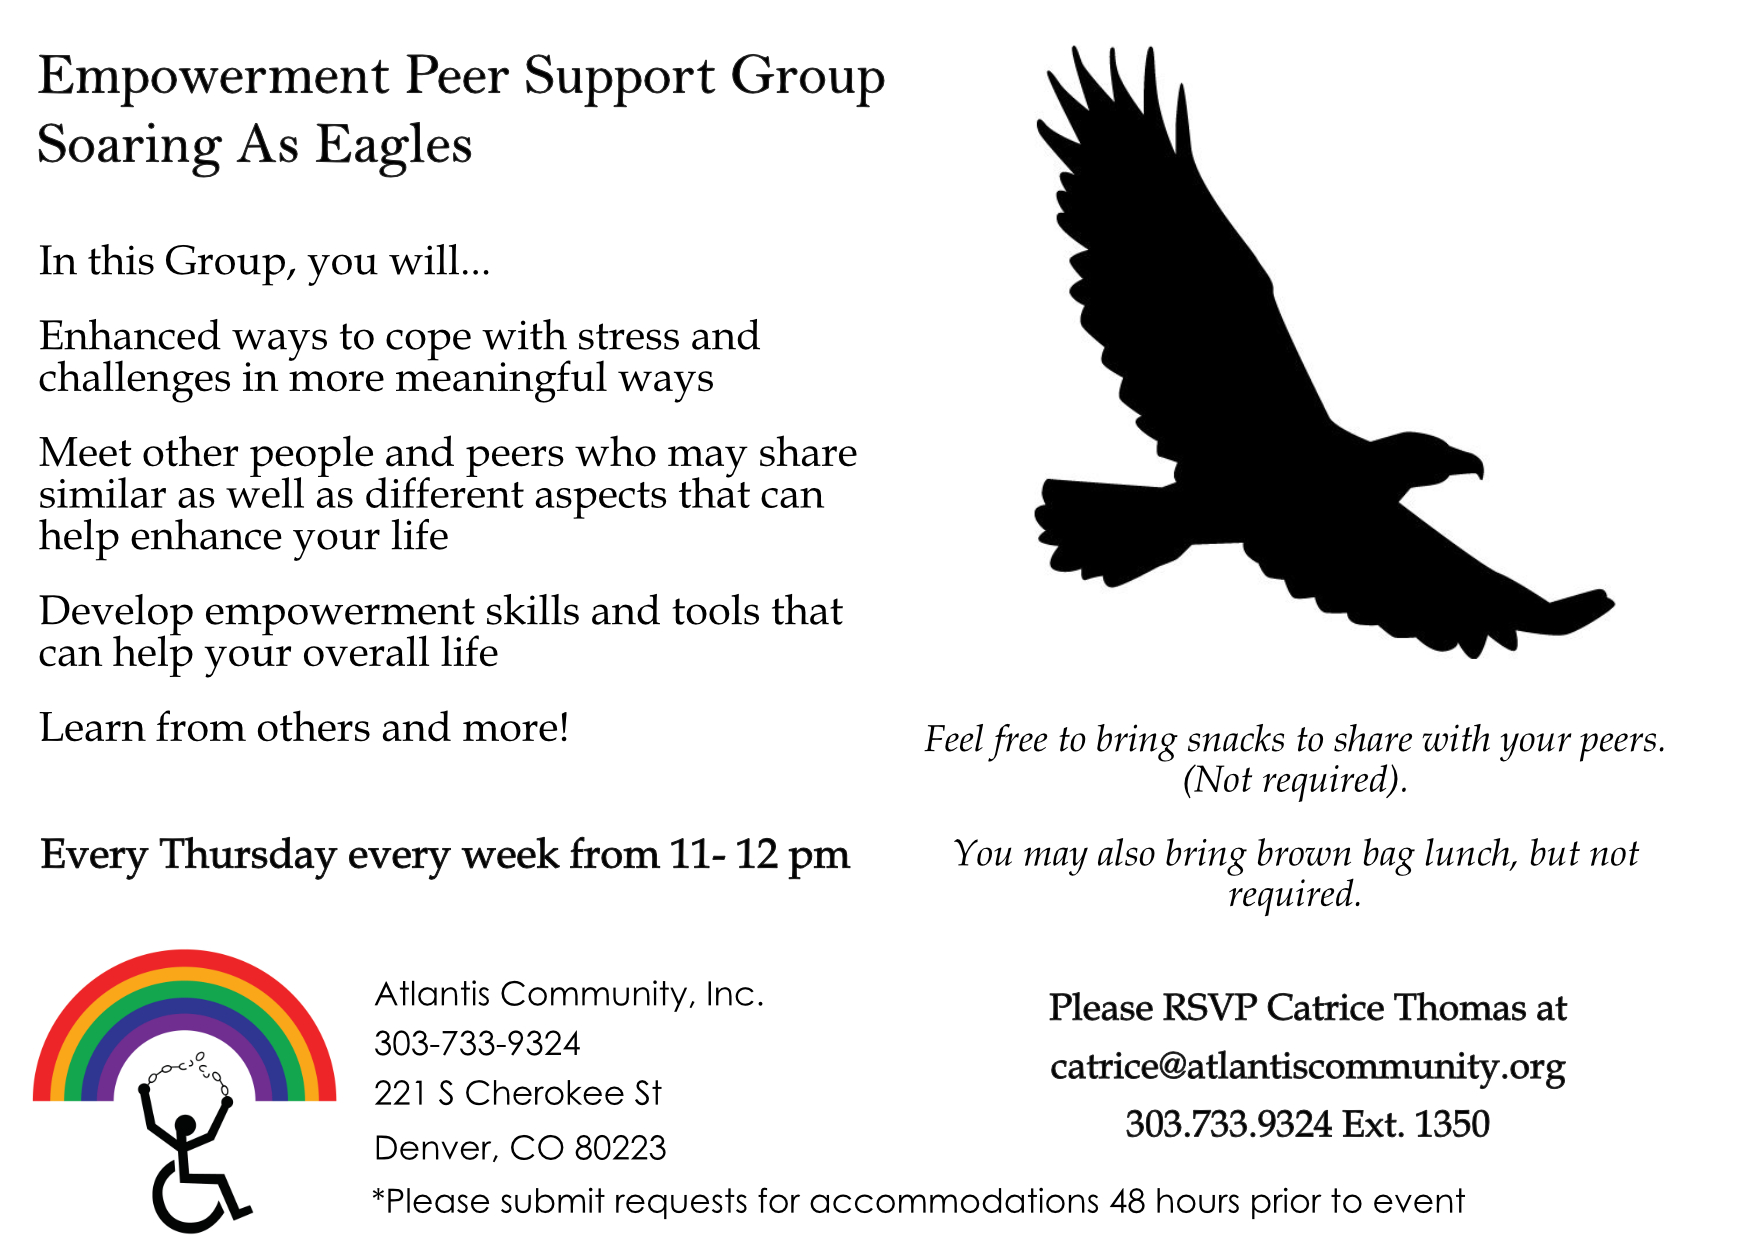 Empowerment Peer Support Group